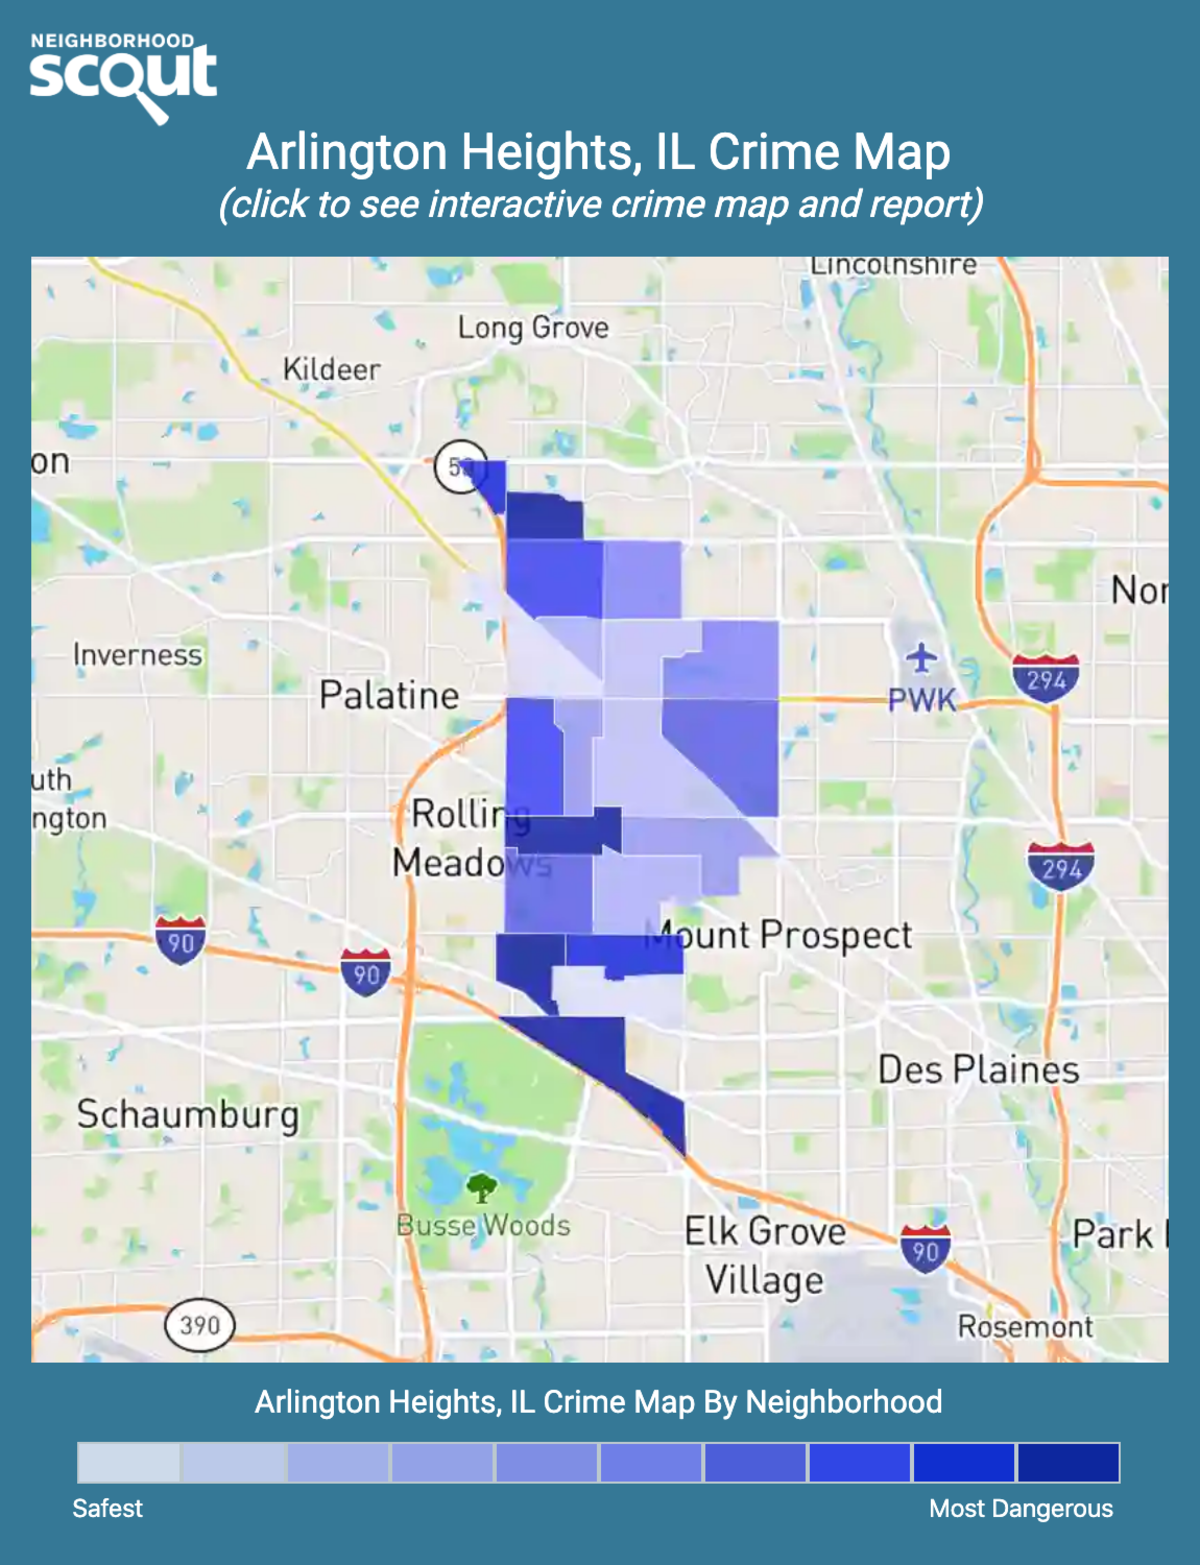 Arlington Heights, Illinois crime map